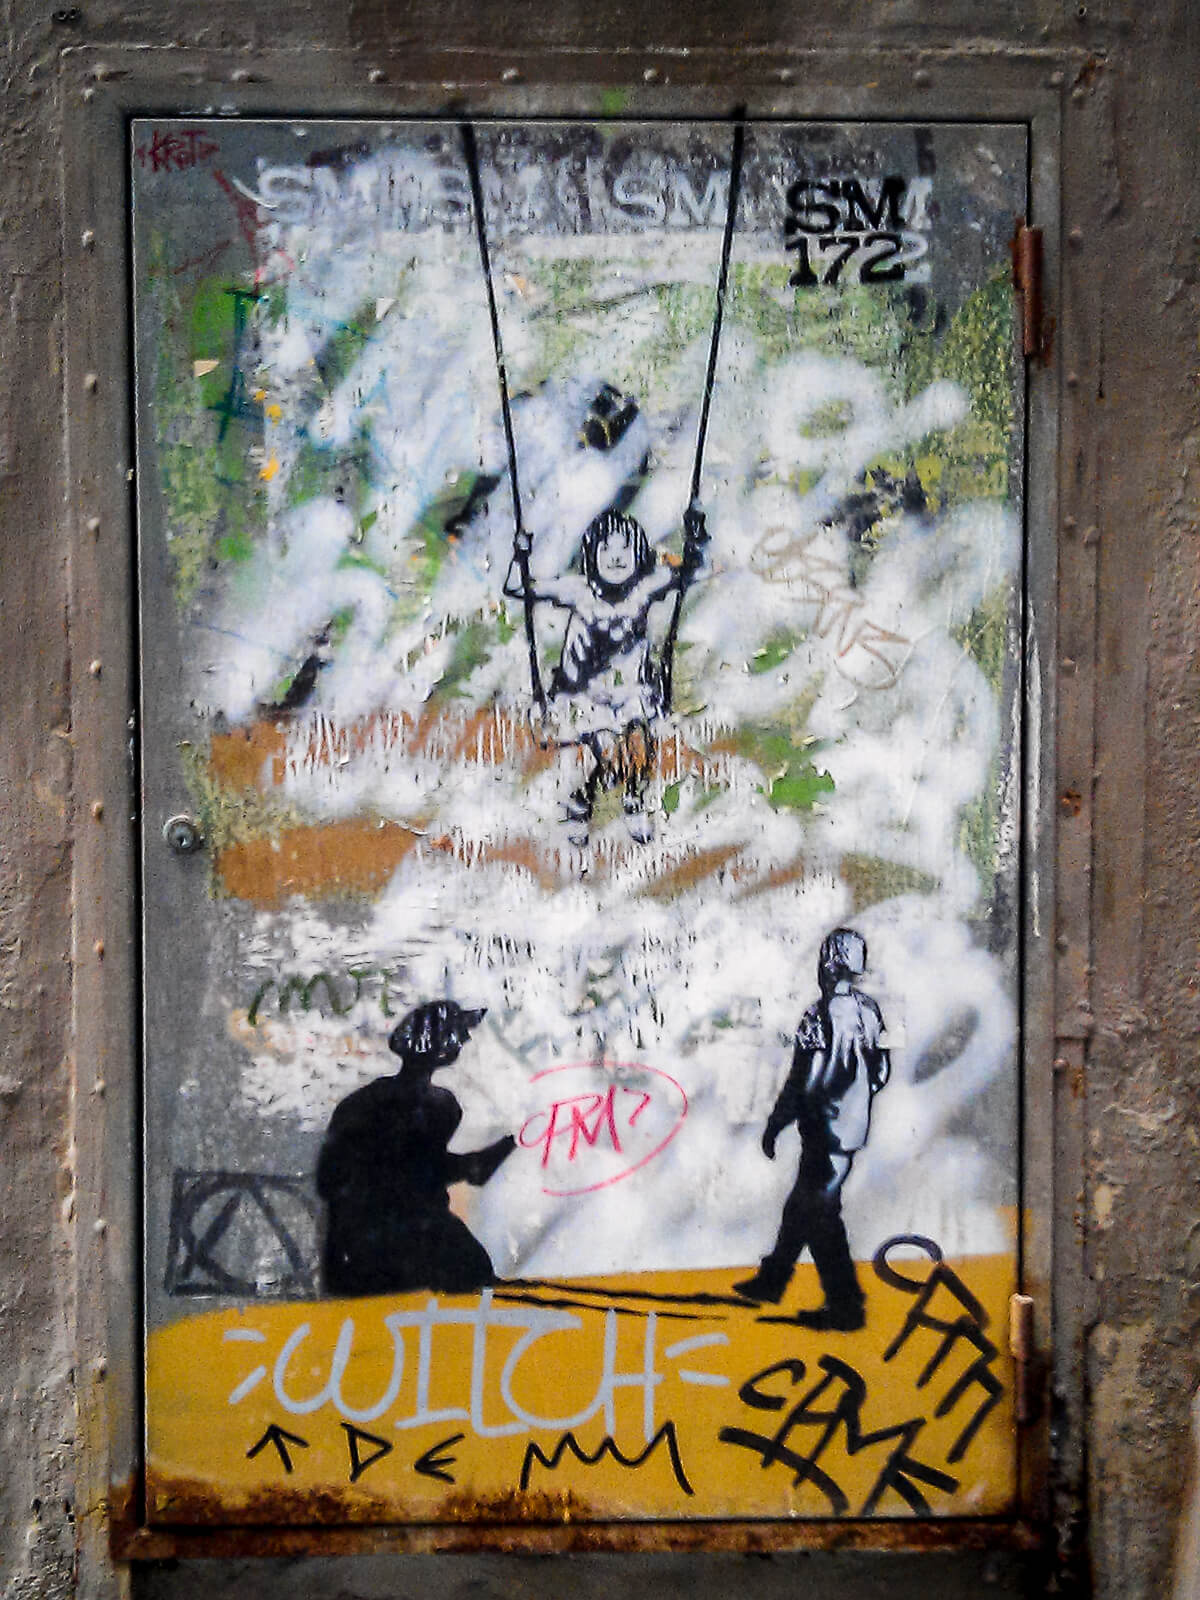 Barcelona Street Photography, SM 172, girl on swing, street art stencil